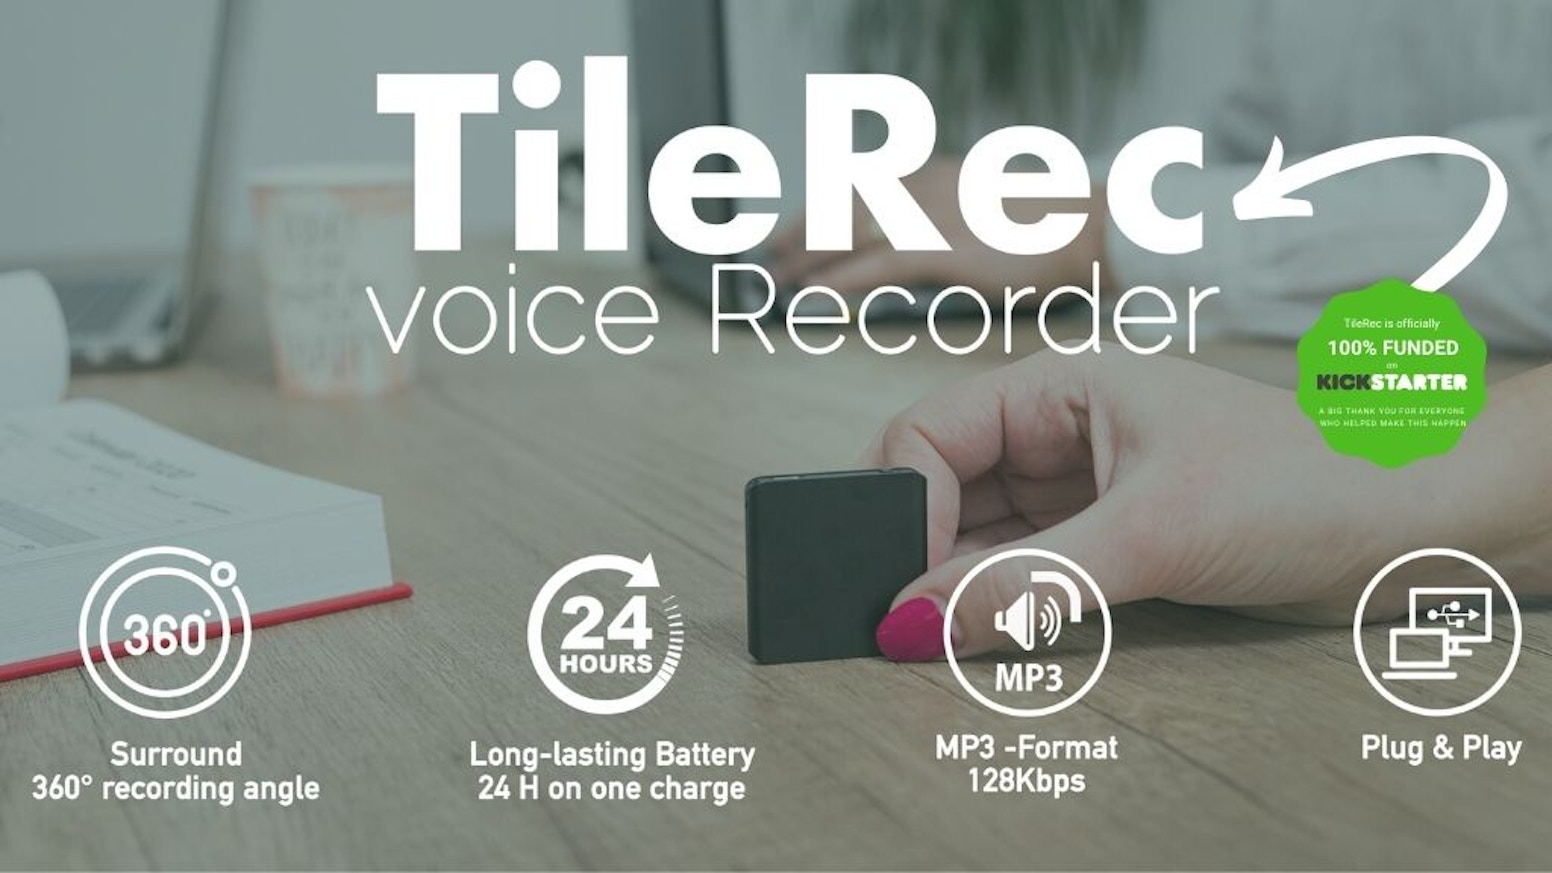 Practical, Tiny & Subtle. TileRec is much more than just the slimmest mini MP3 voice recorder.In case you miss it, you can find TileRec on InDemand